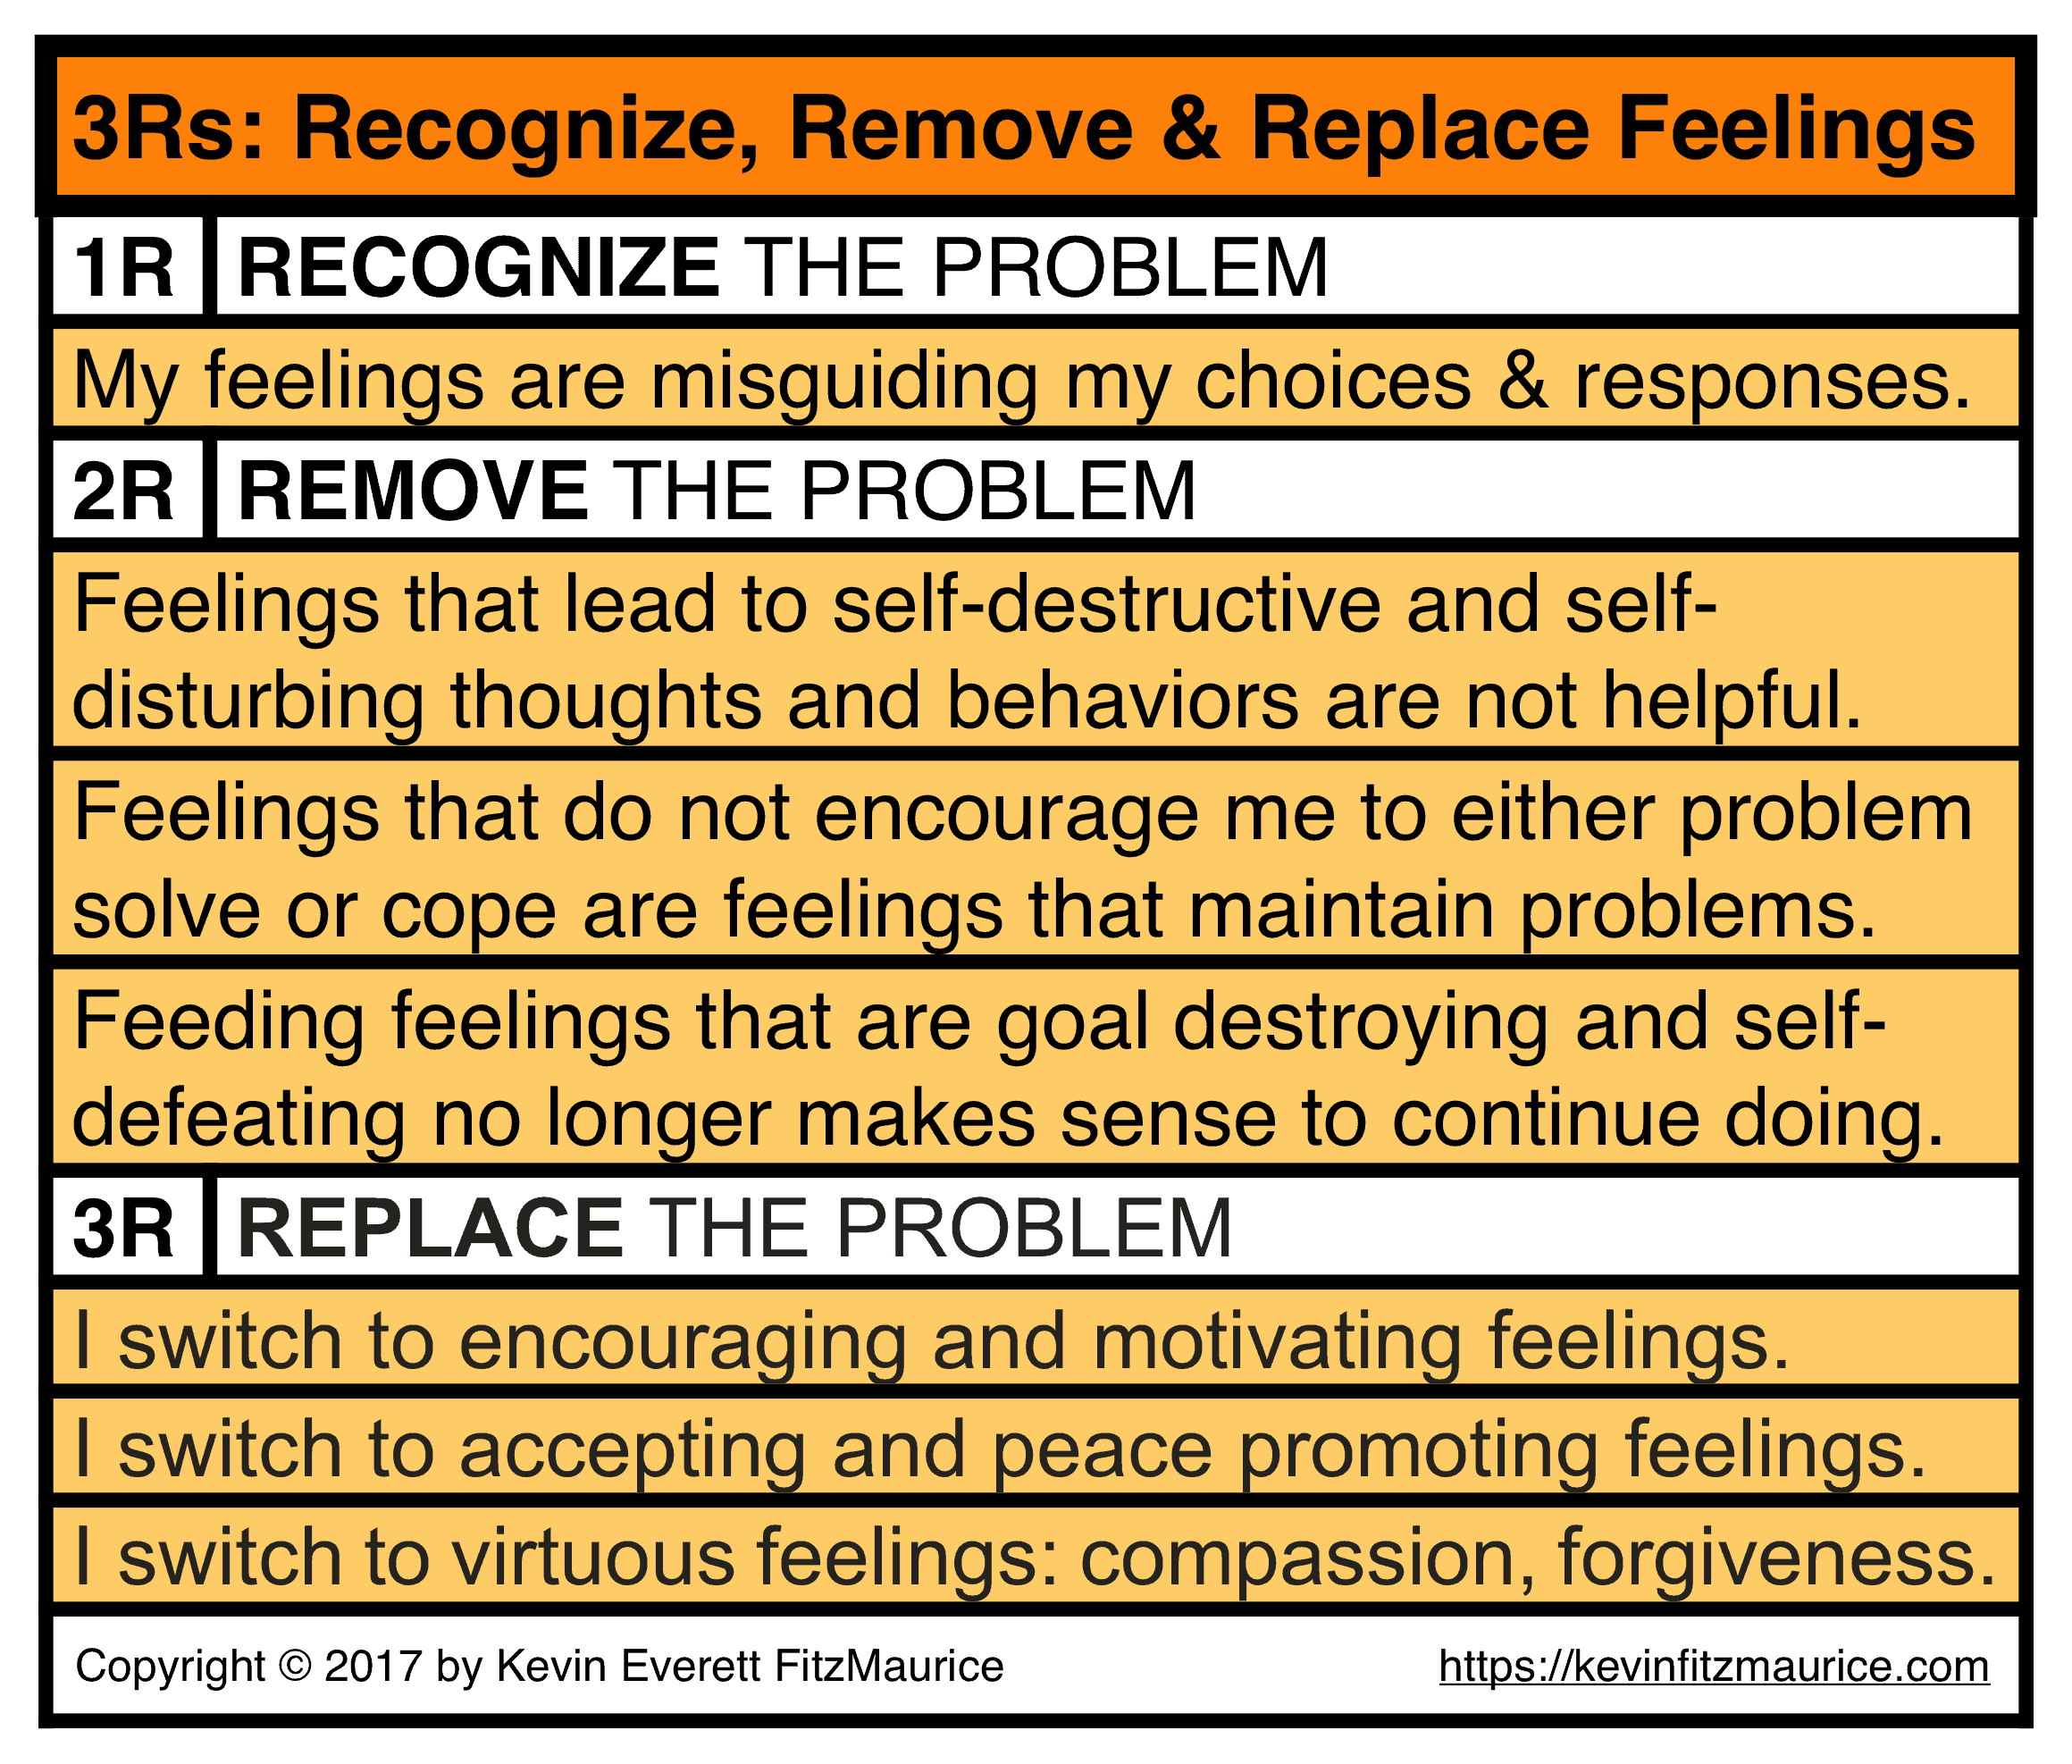 3Rs Used to Replace Feelings